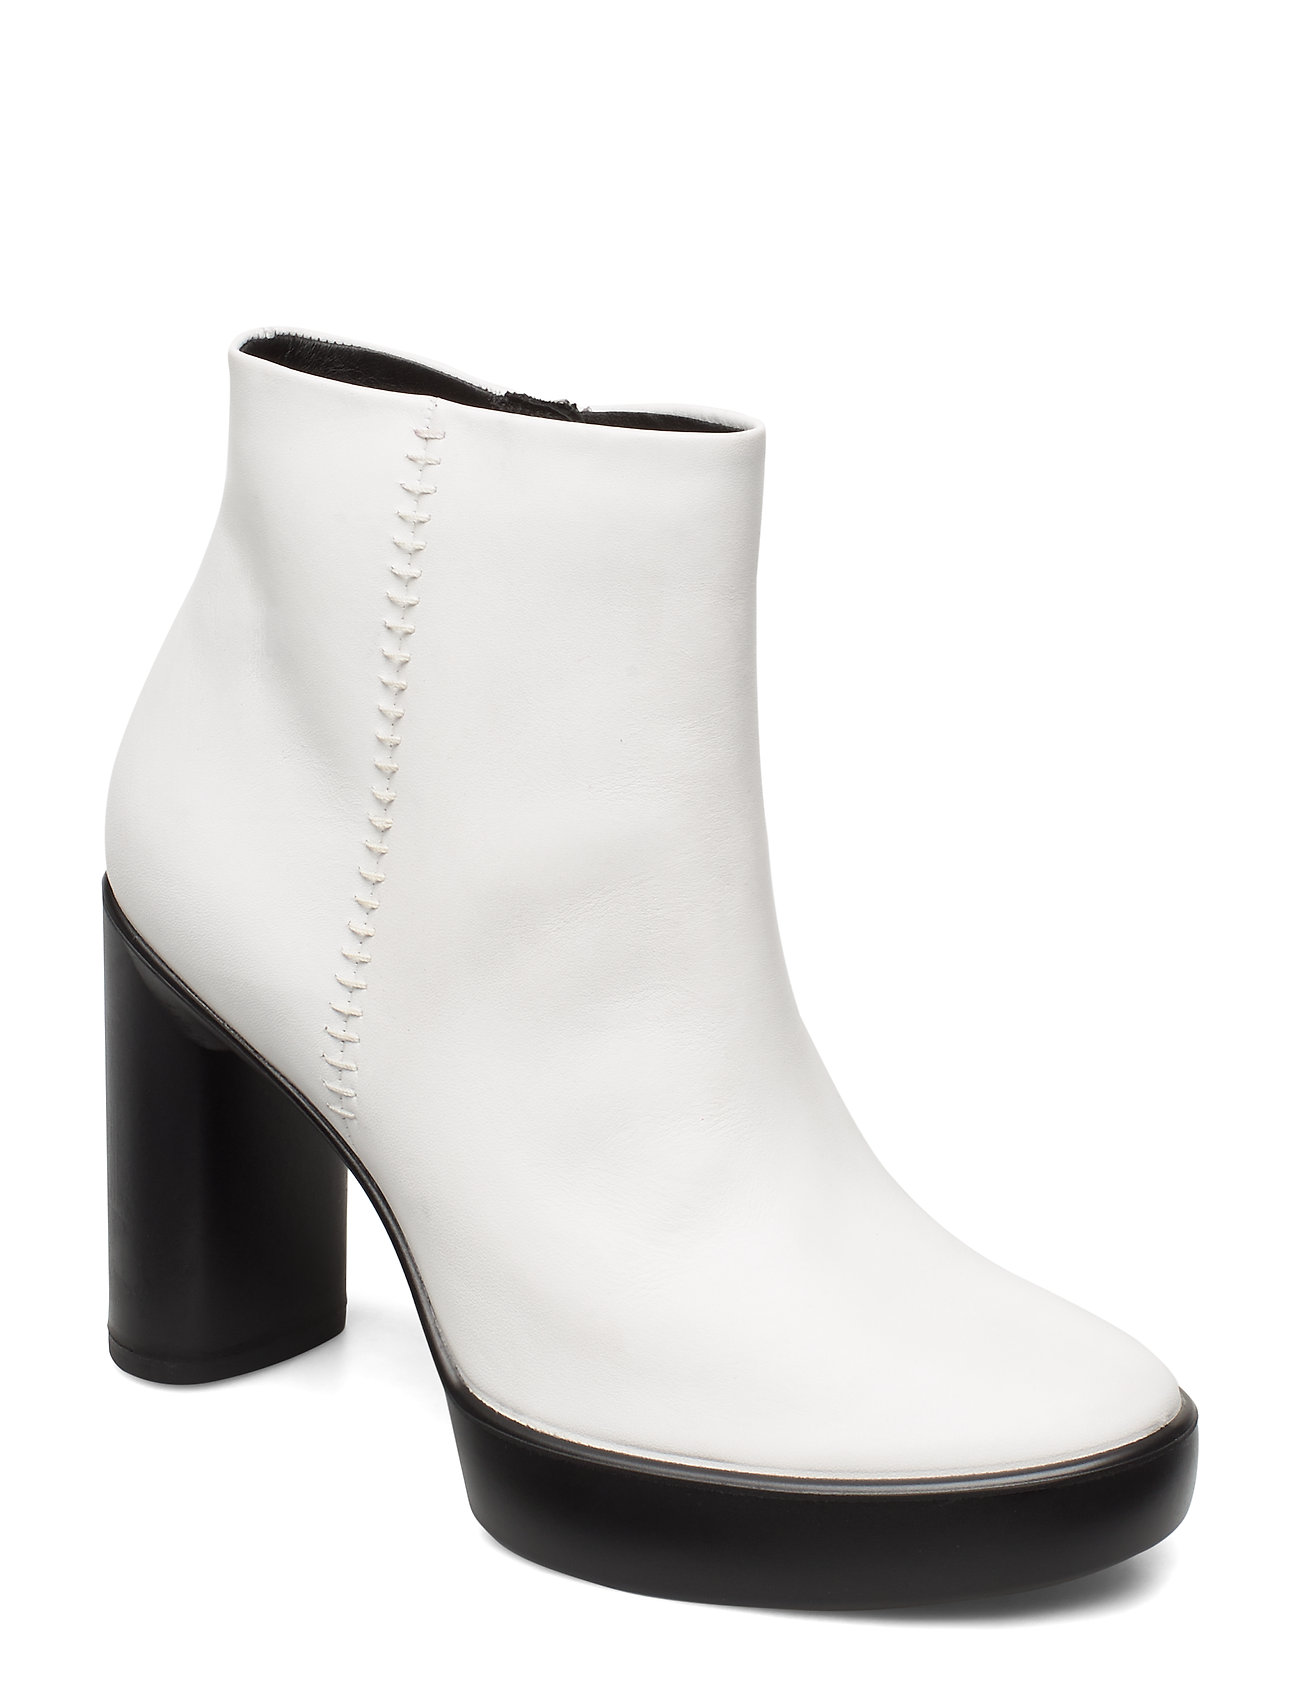 Image of Shape Sculpted Motion 75 Shoes Boots Ankle Boots Ankle Boot - Heel Hvid ECCO (3439725015)